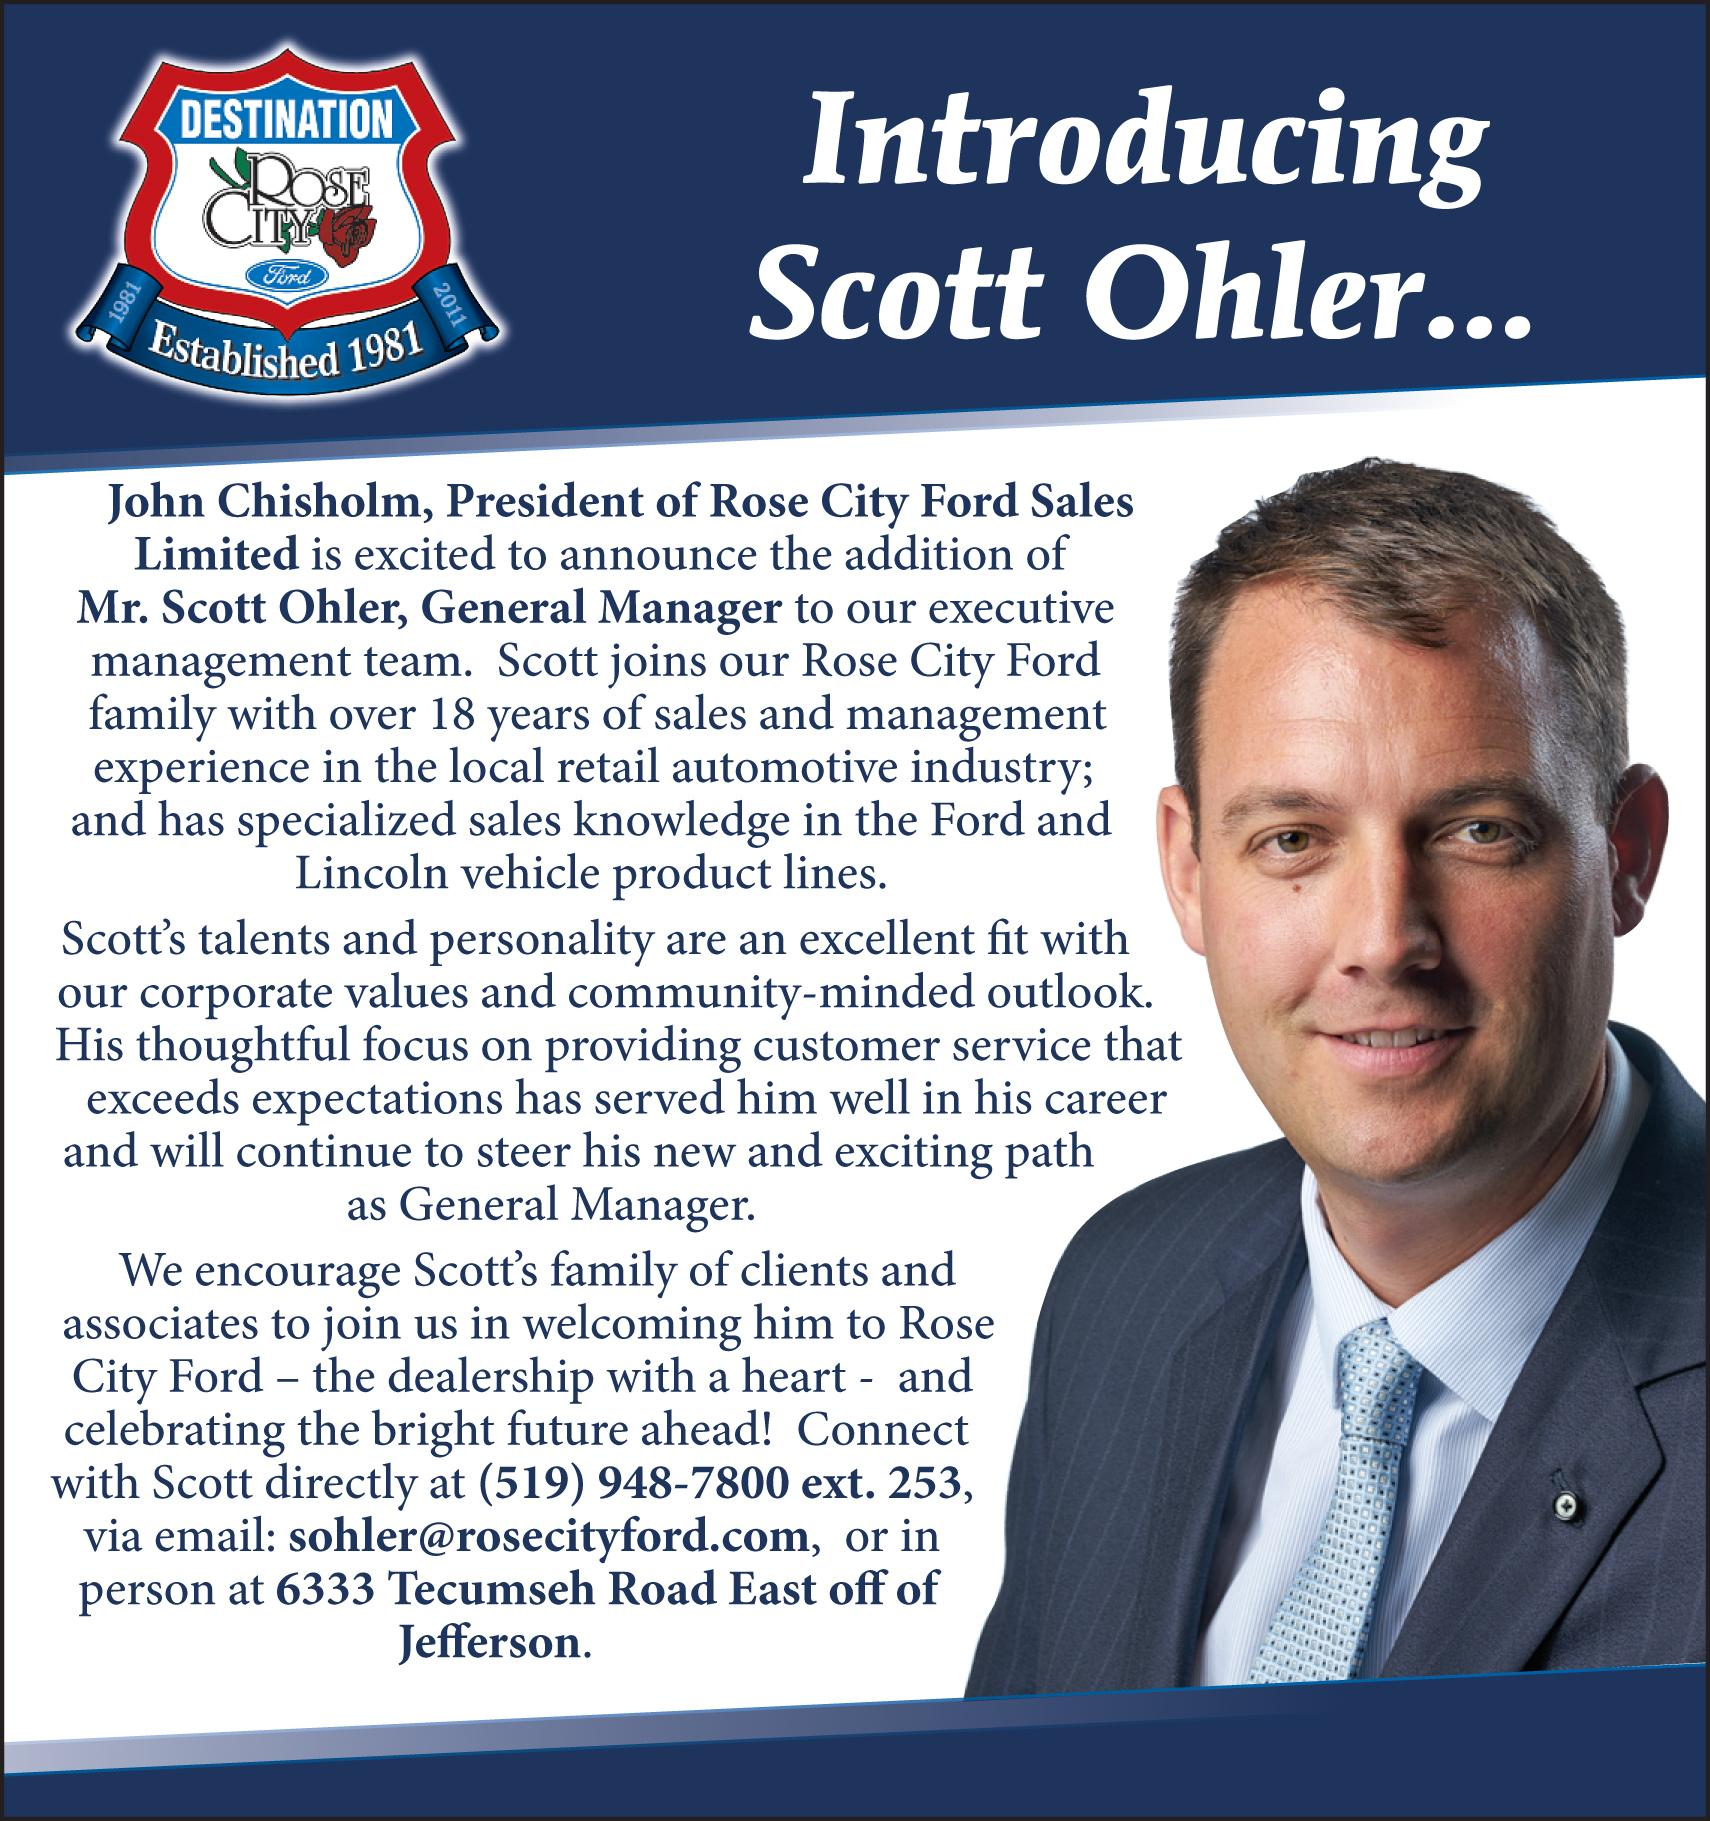 Ford Welcome Scott Ohler to the Rose City Ford family image